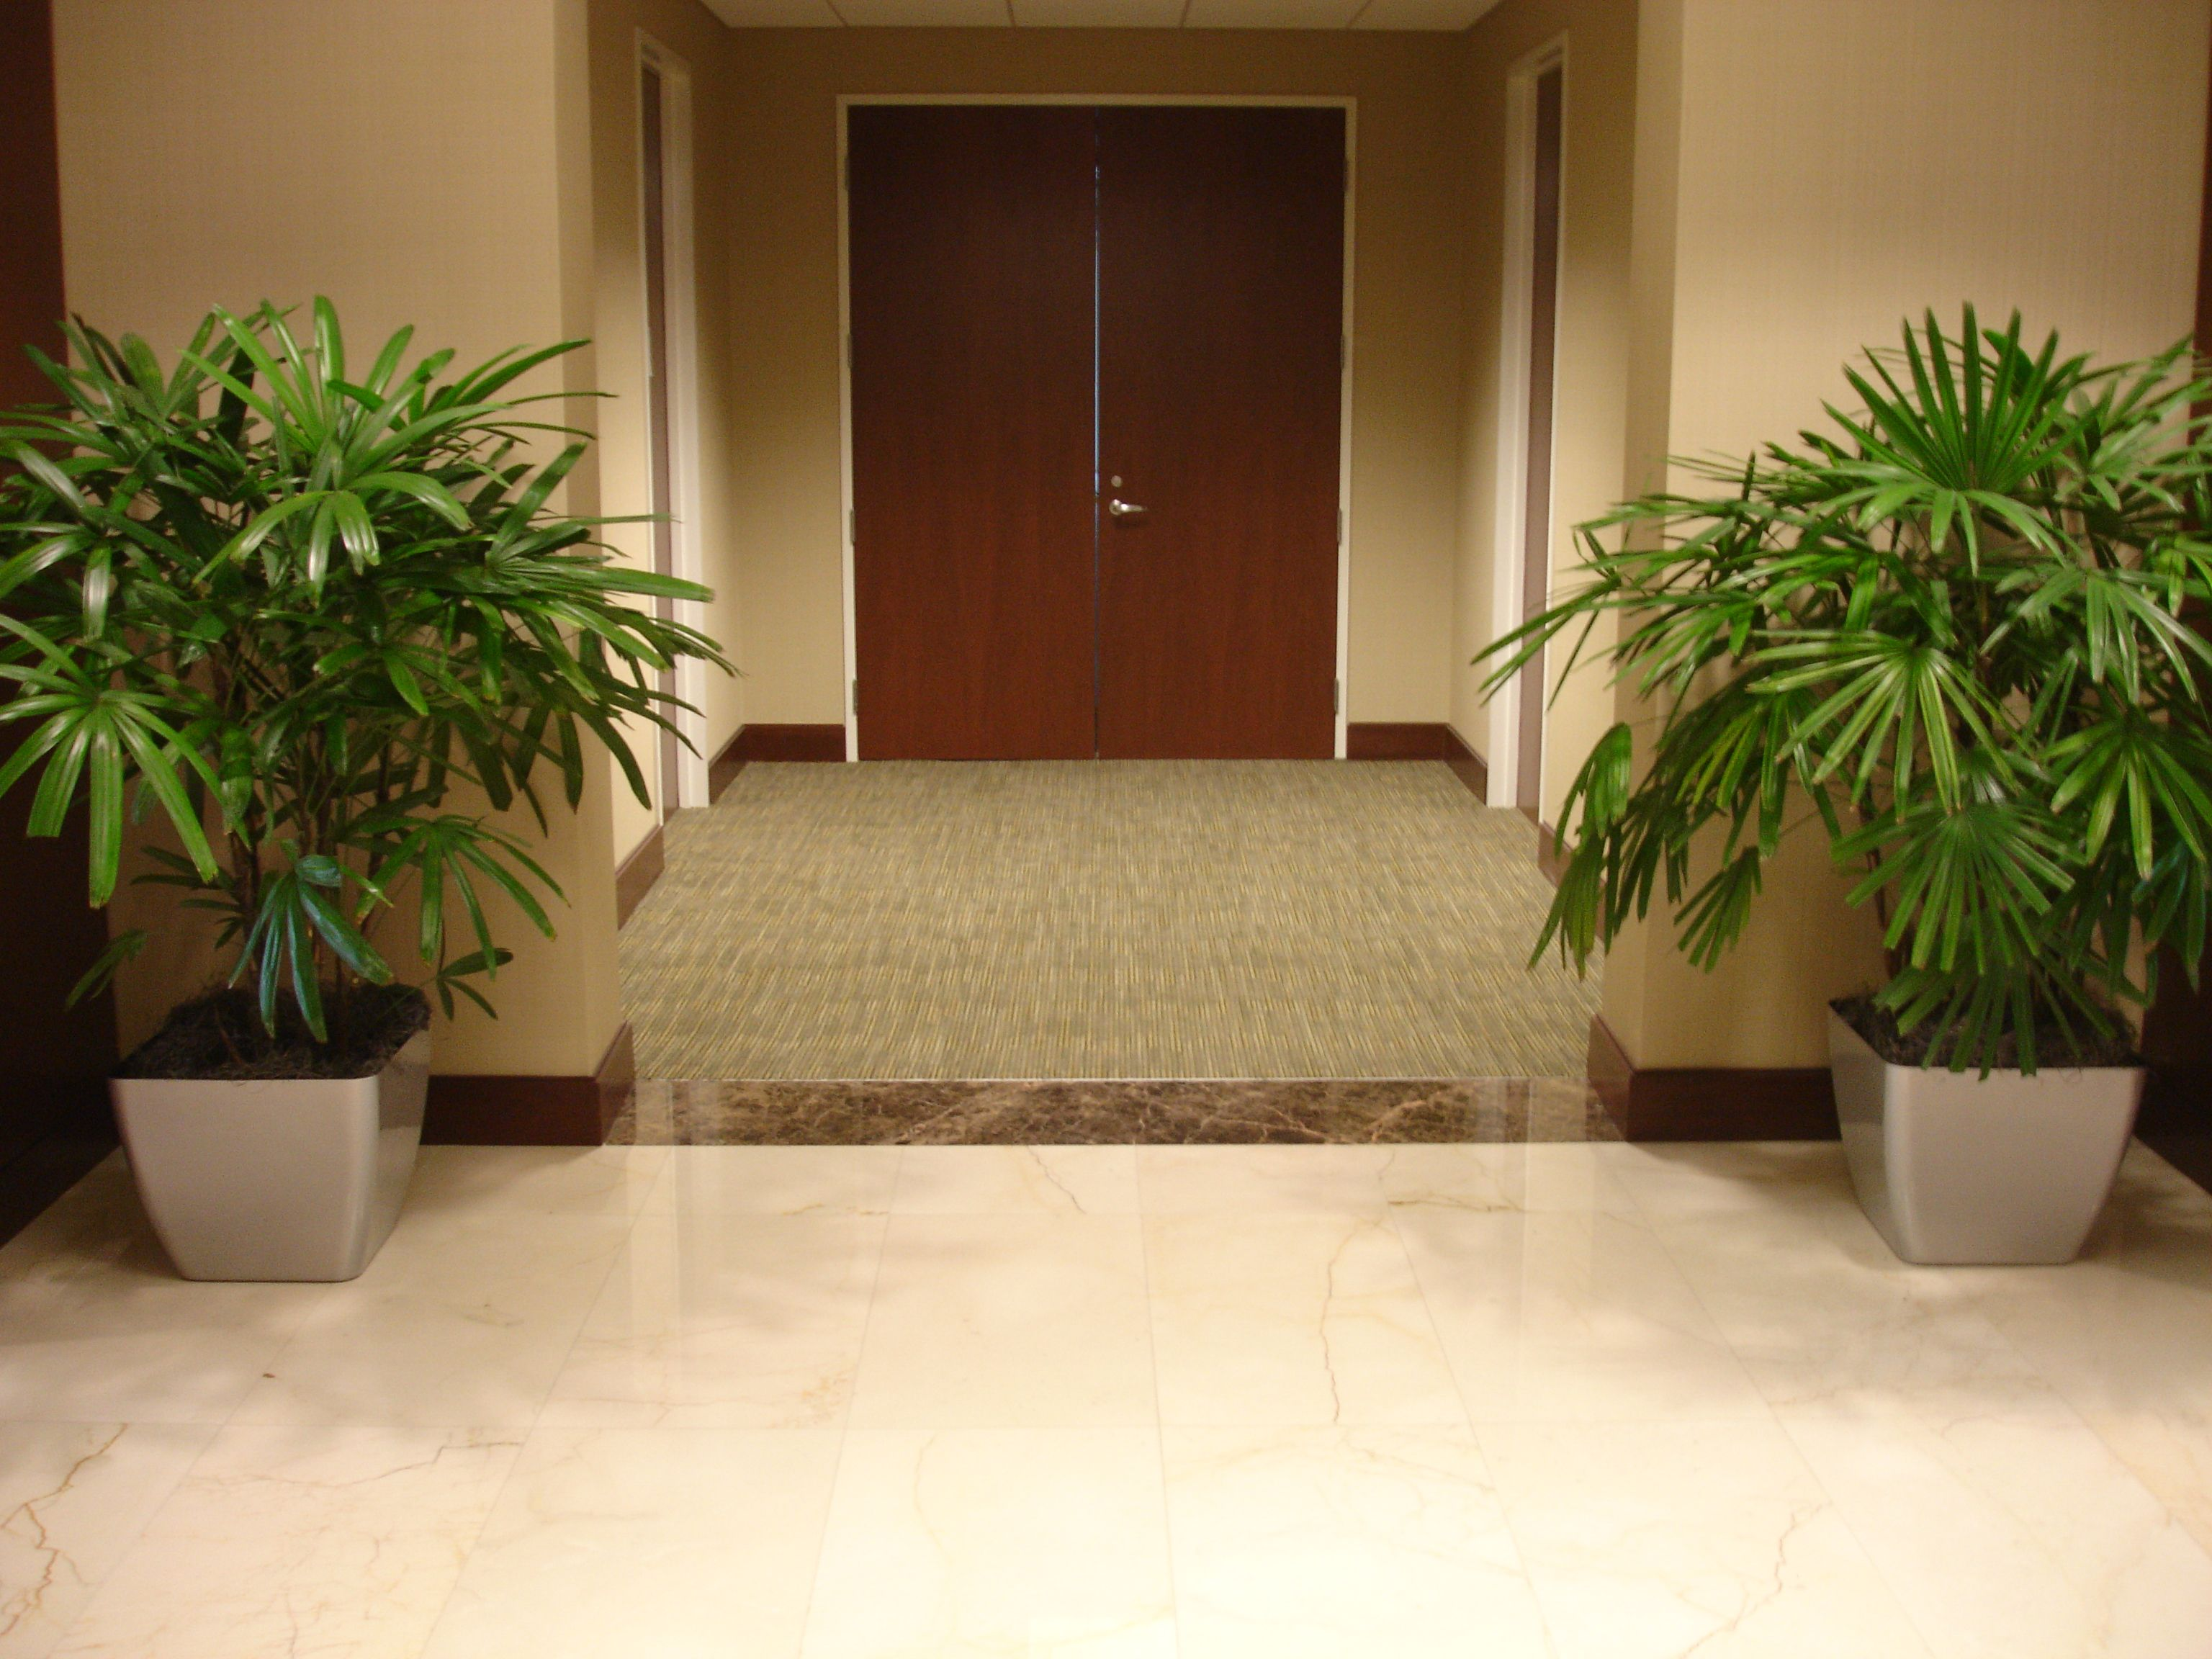 Hallway leading to the ladies rooms - Raphis Palms Aka Lady Finger Liven Up An Empty Hallway